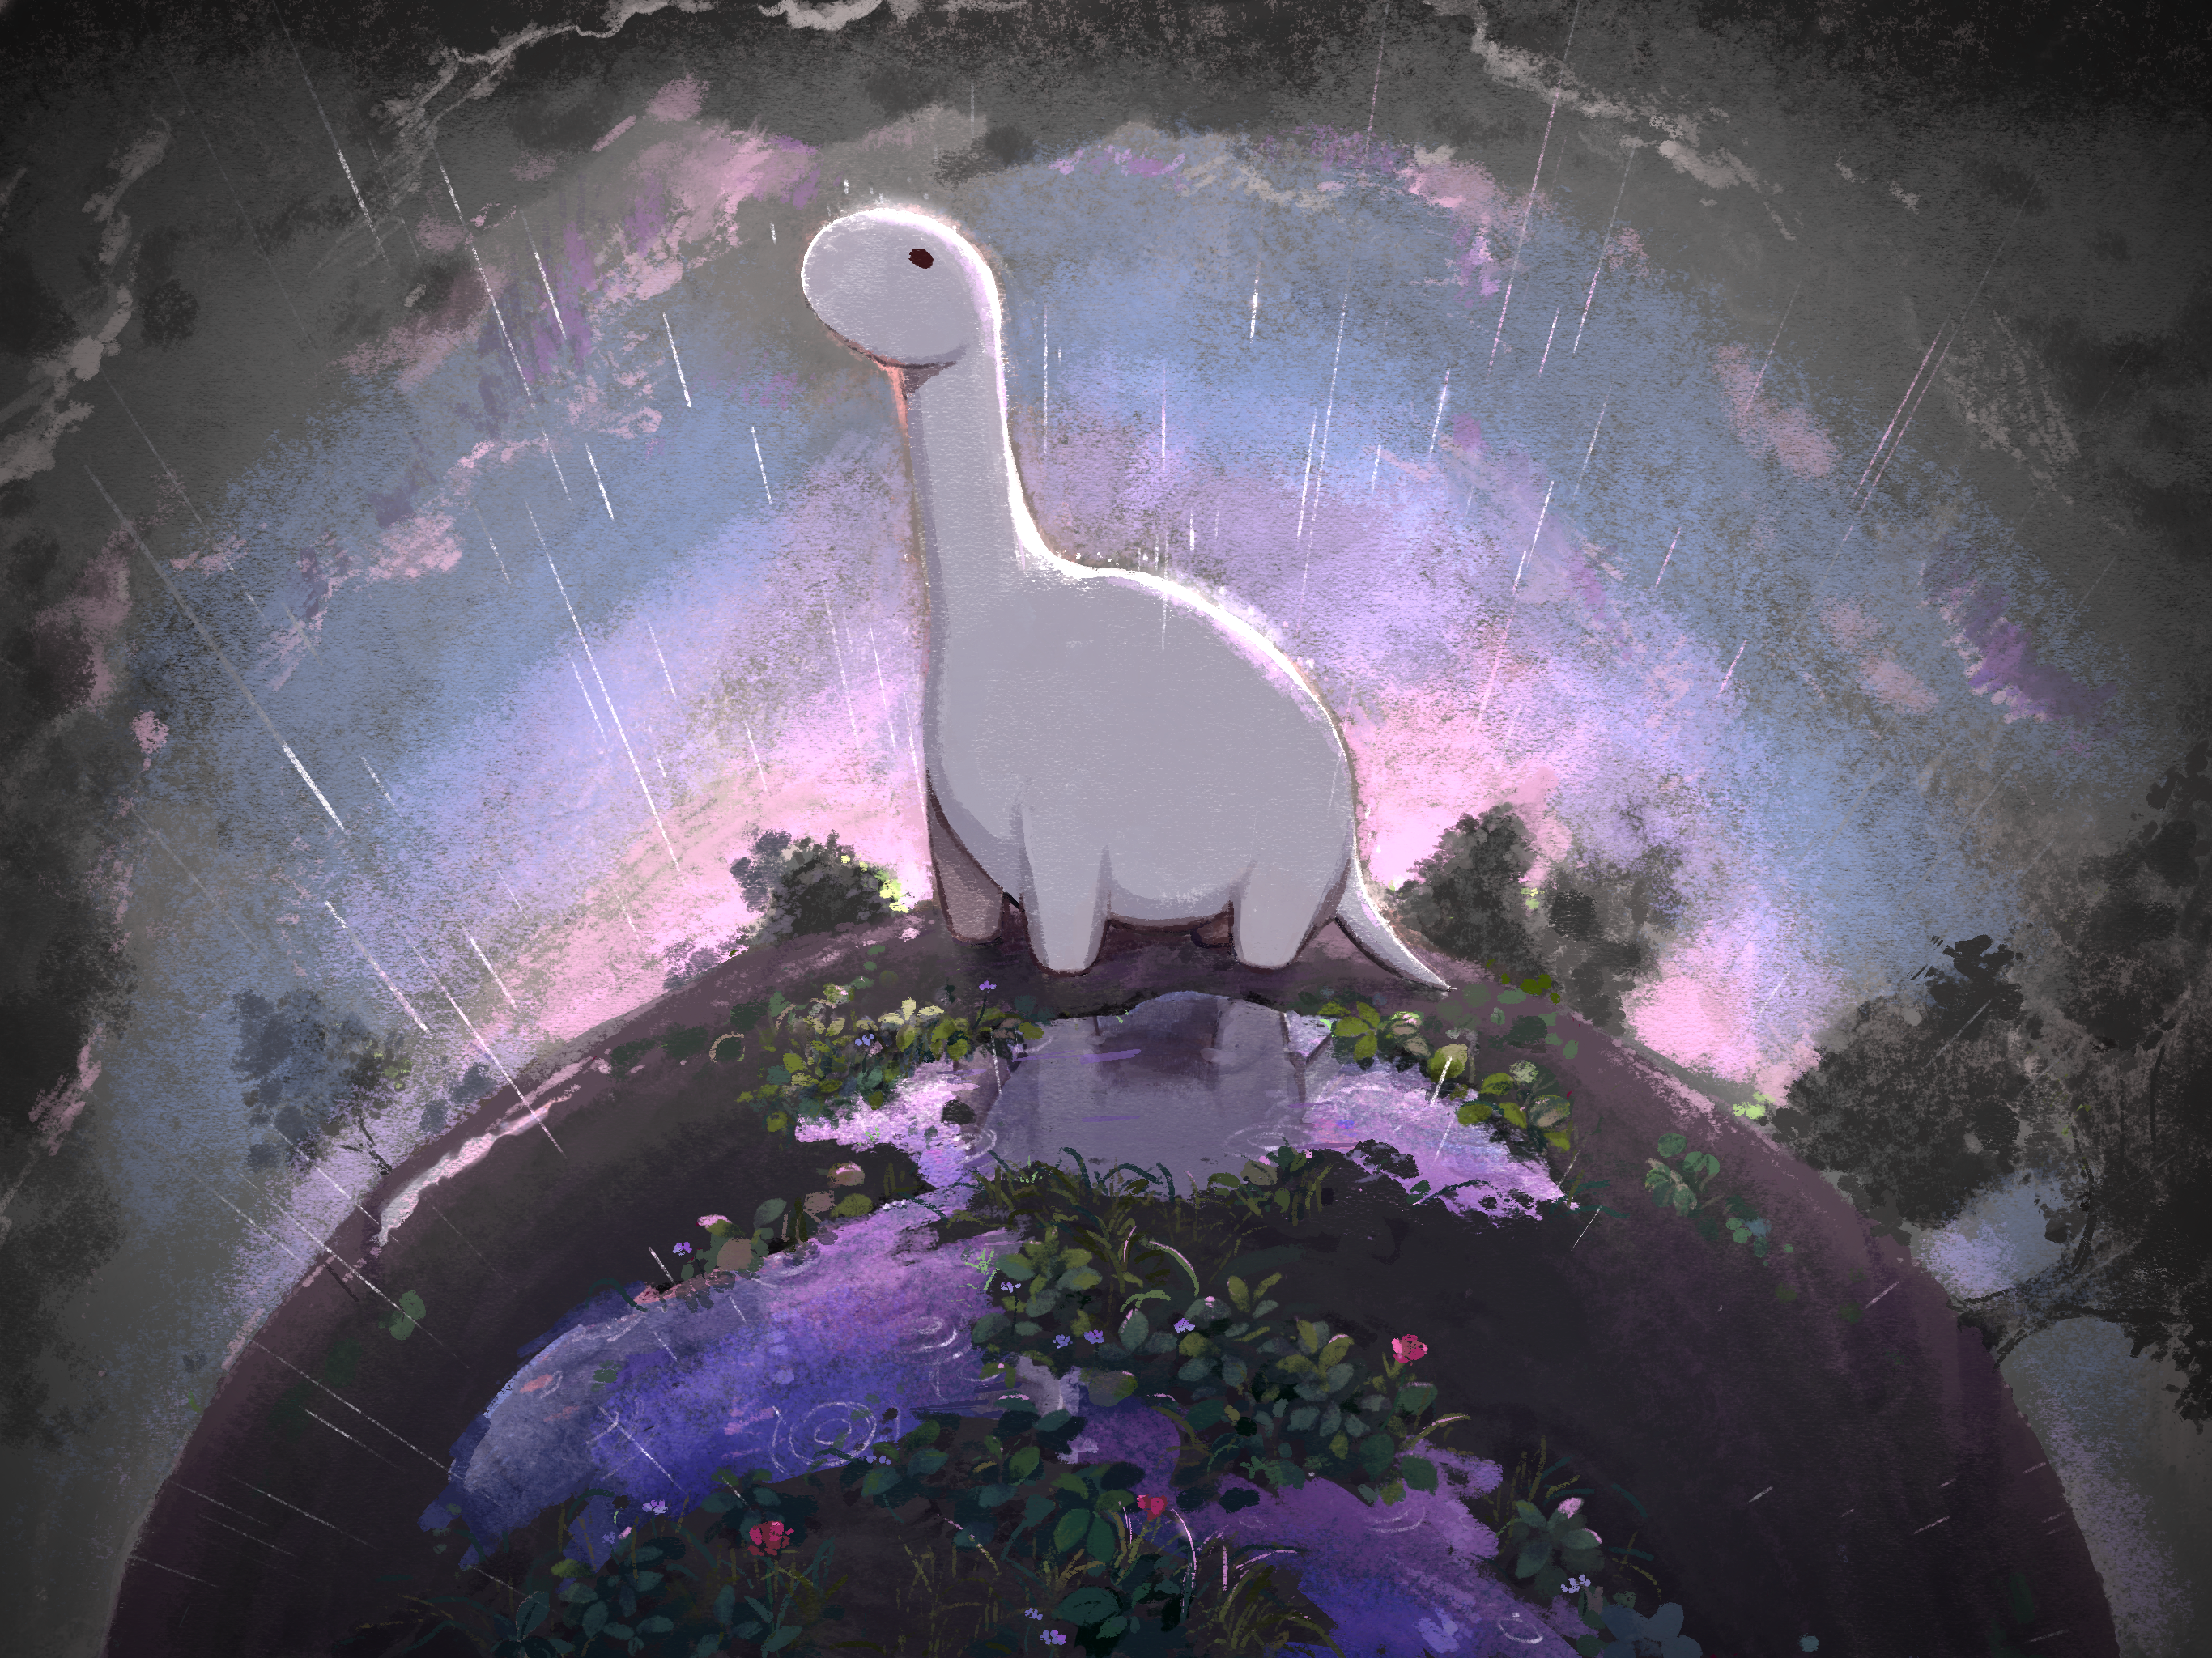 a gloomy scene with a white dinosaur standing in the rain on a purple planet